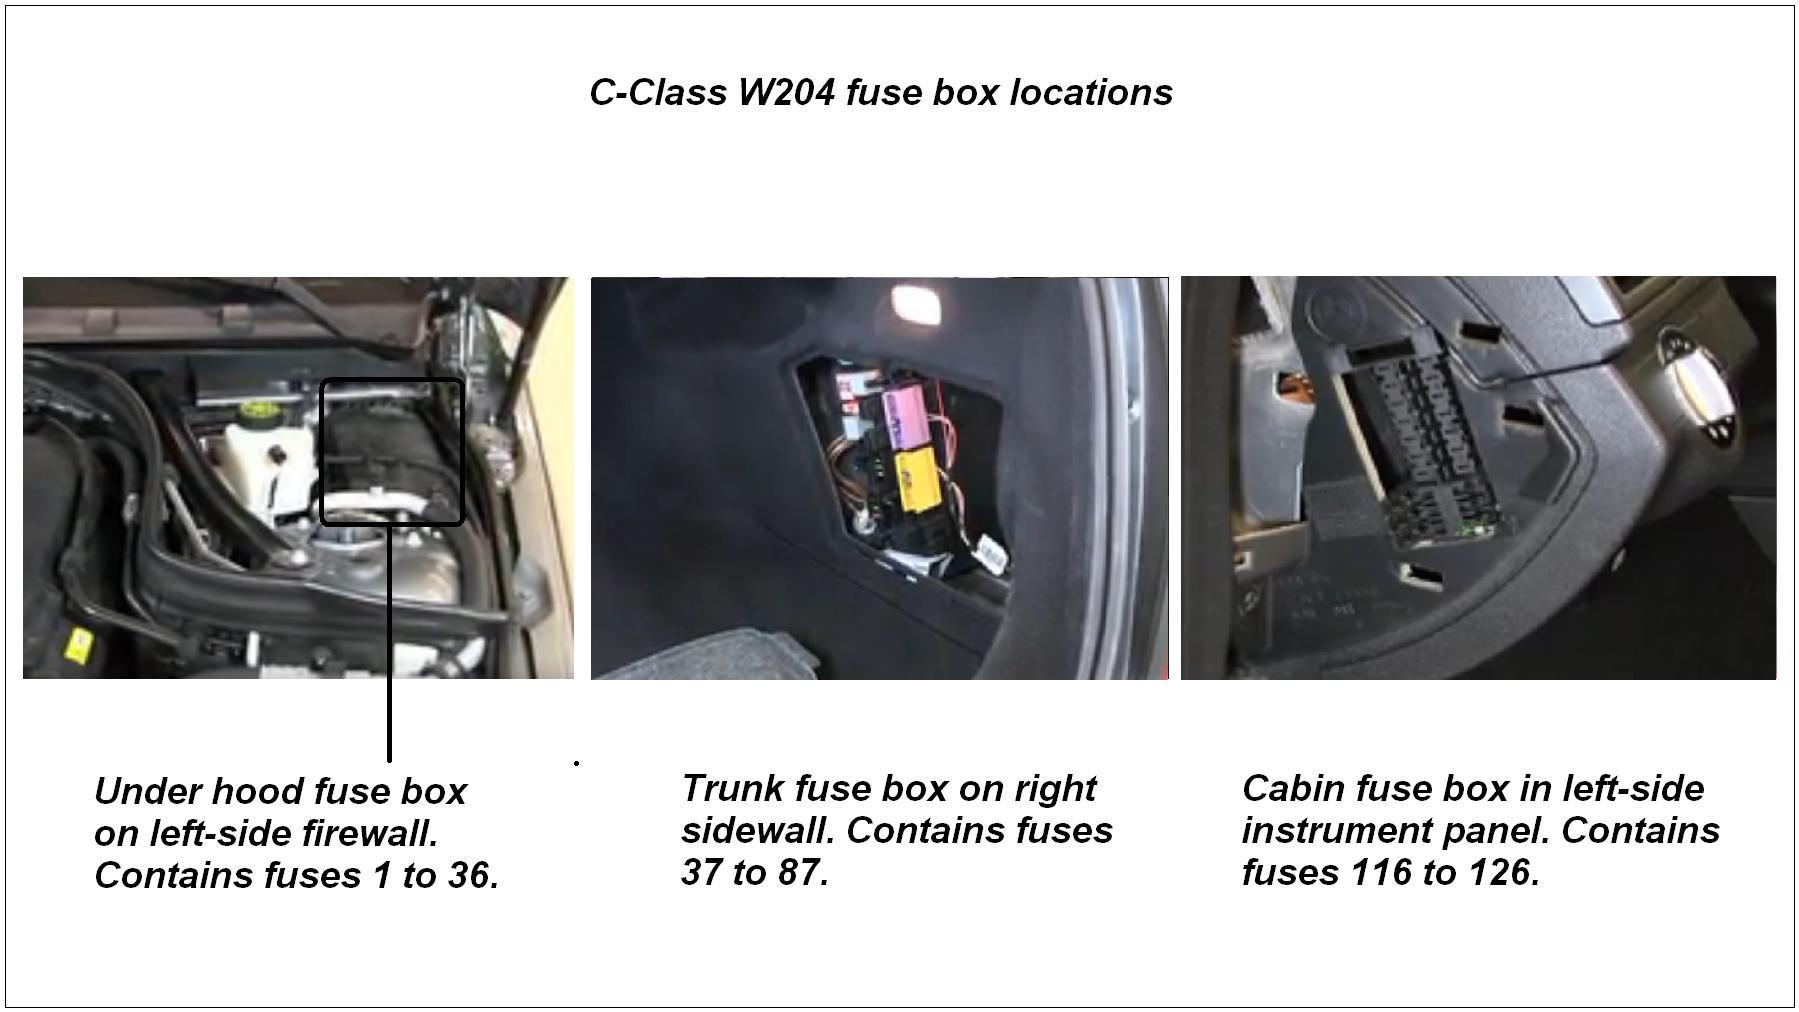 W204fuseboxlocations1799x1012 65419 mercedes benz c class w204 fuse diagrams and commonly blown fuses mercedes w204 fuse box location at crackthecode.co